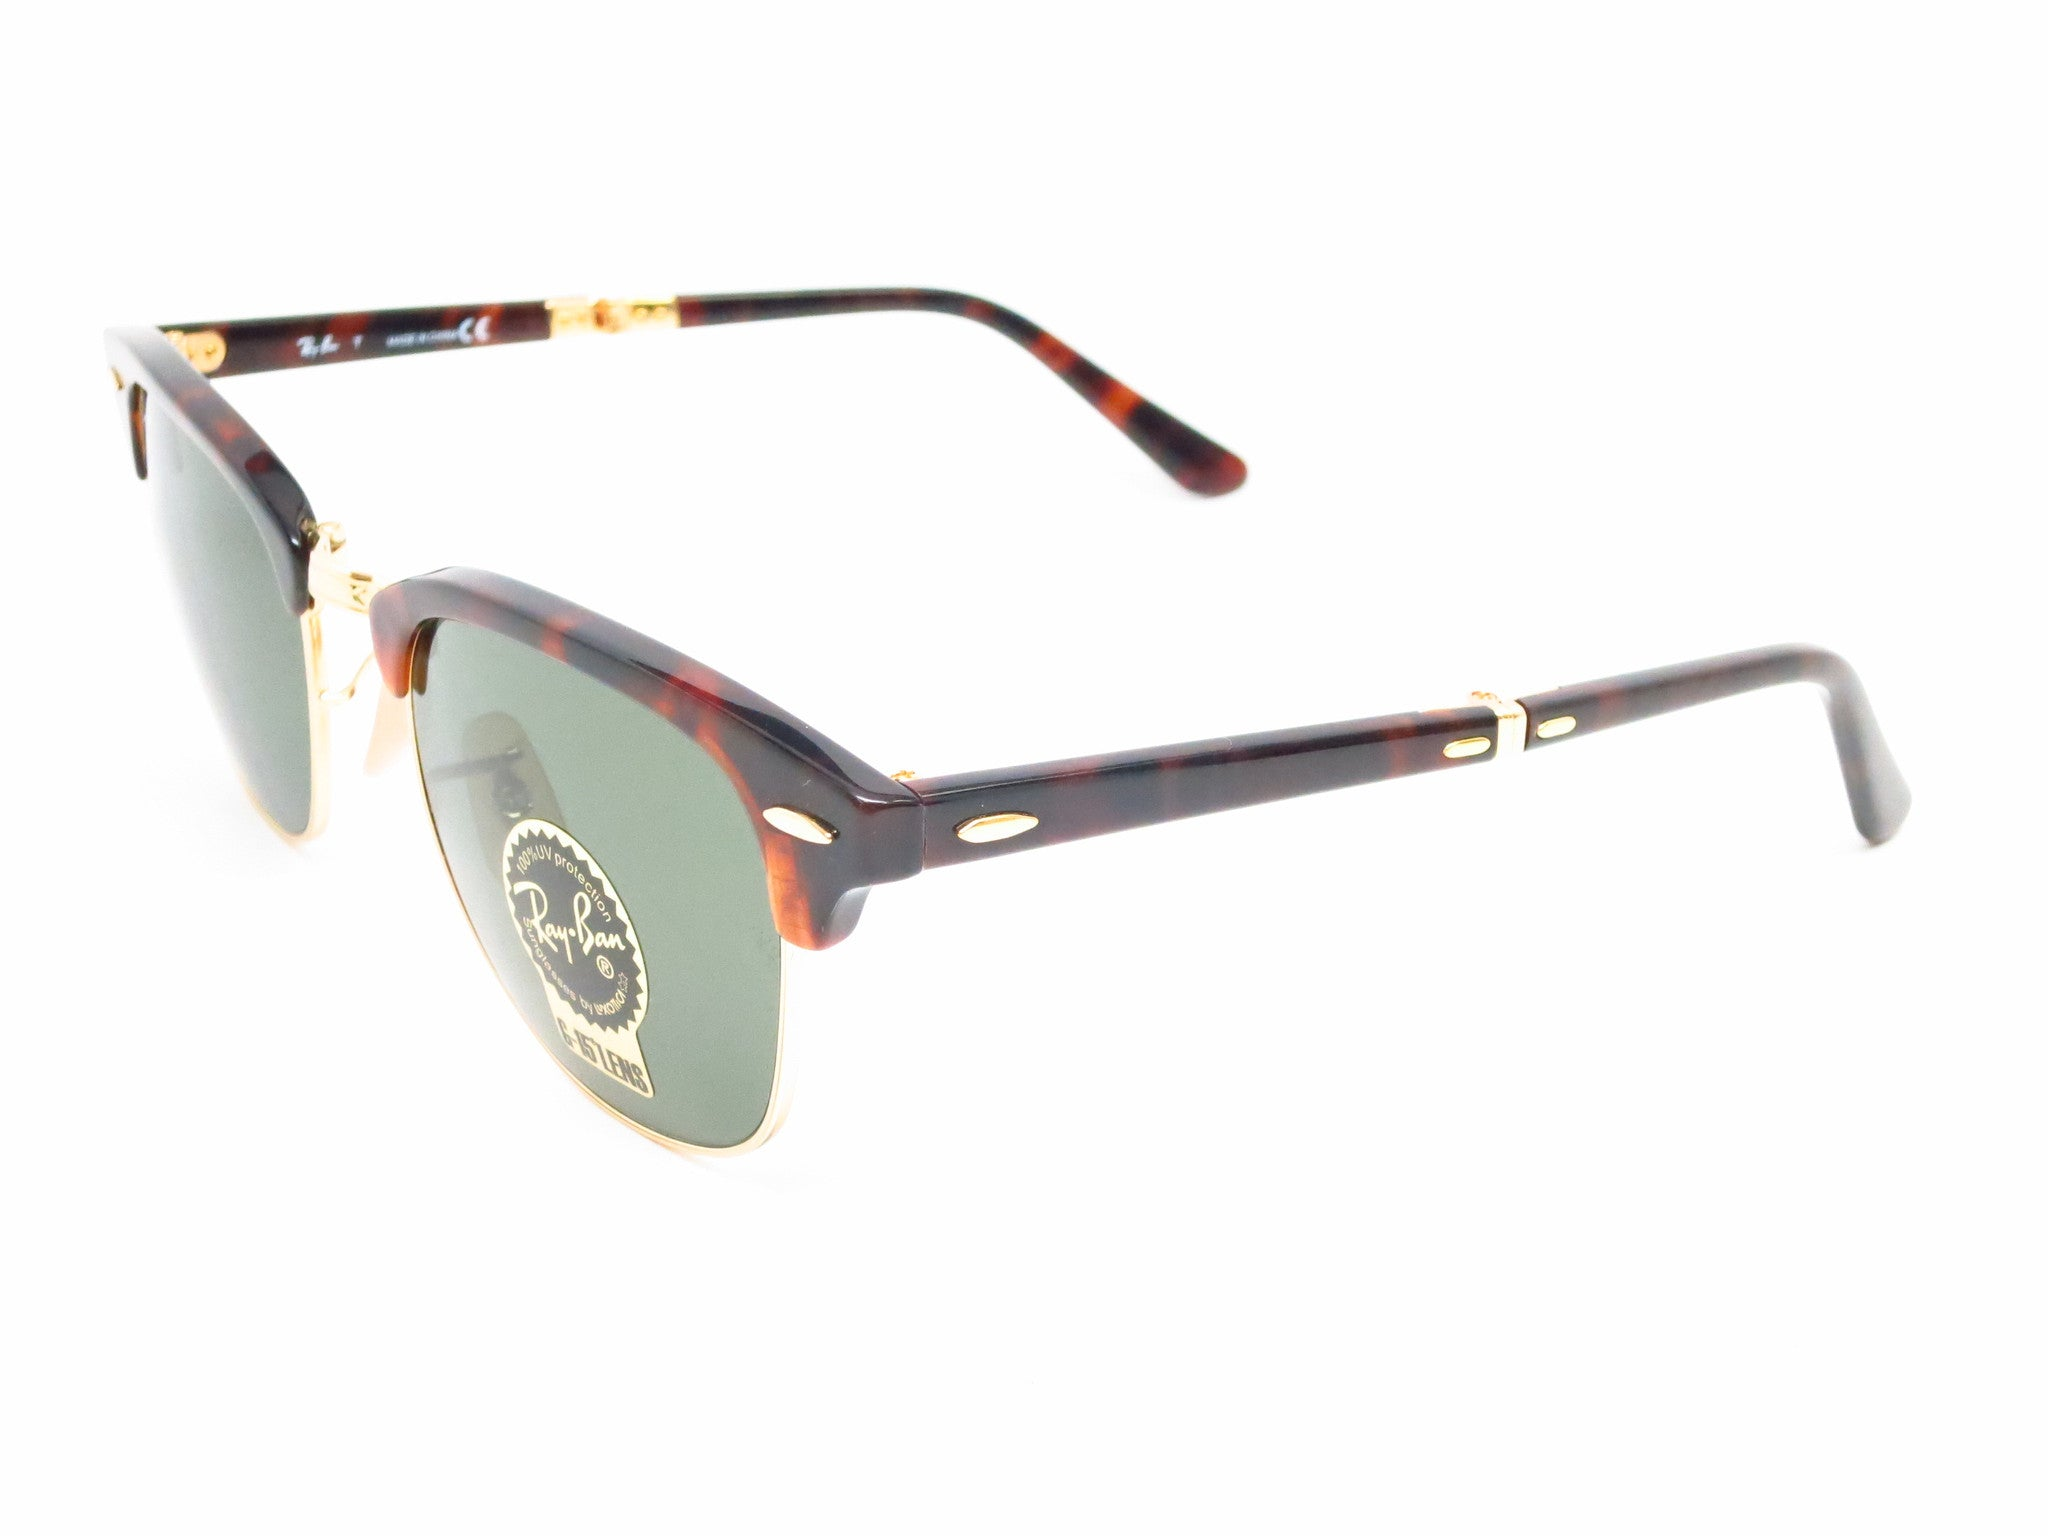 cc67f4553ac Ray-Ban RB 2176 Clubmaster Folding 990 Red Havana Sunglasses - Eye Heart  Shades ...